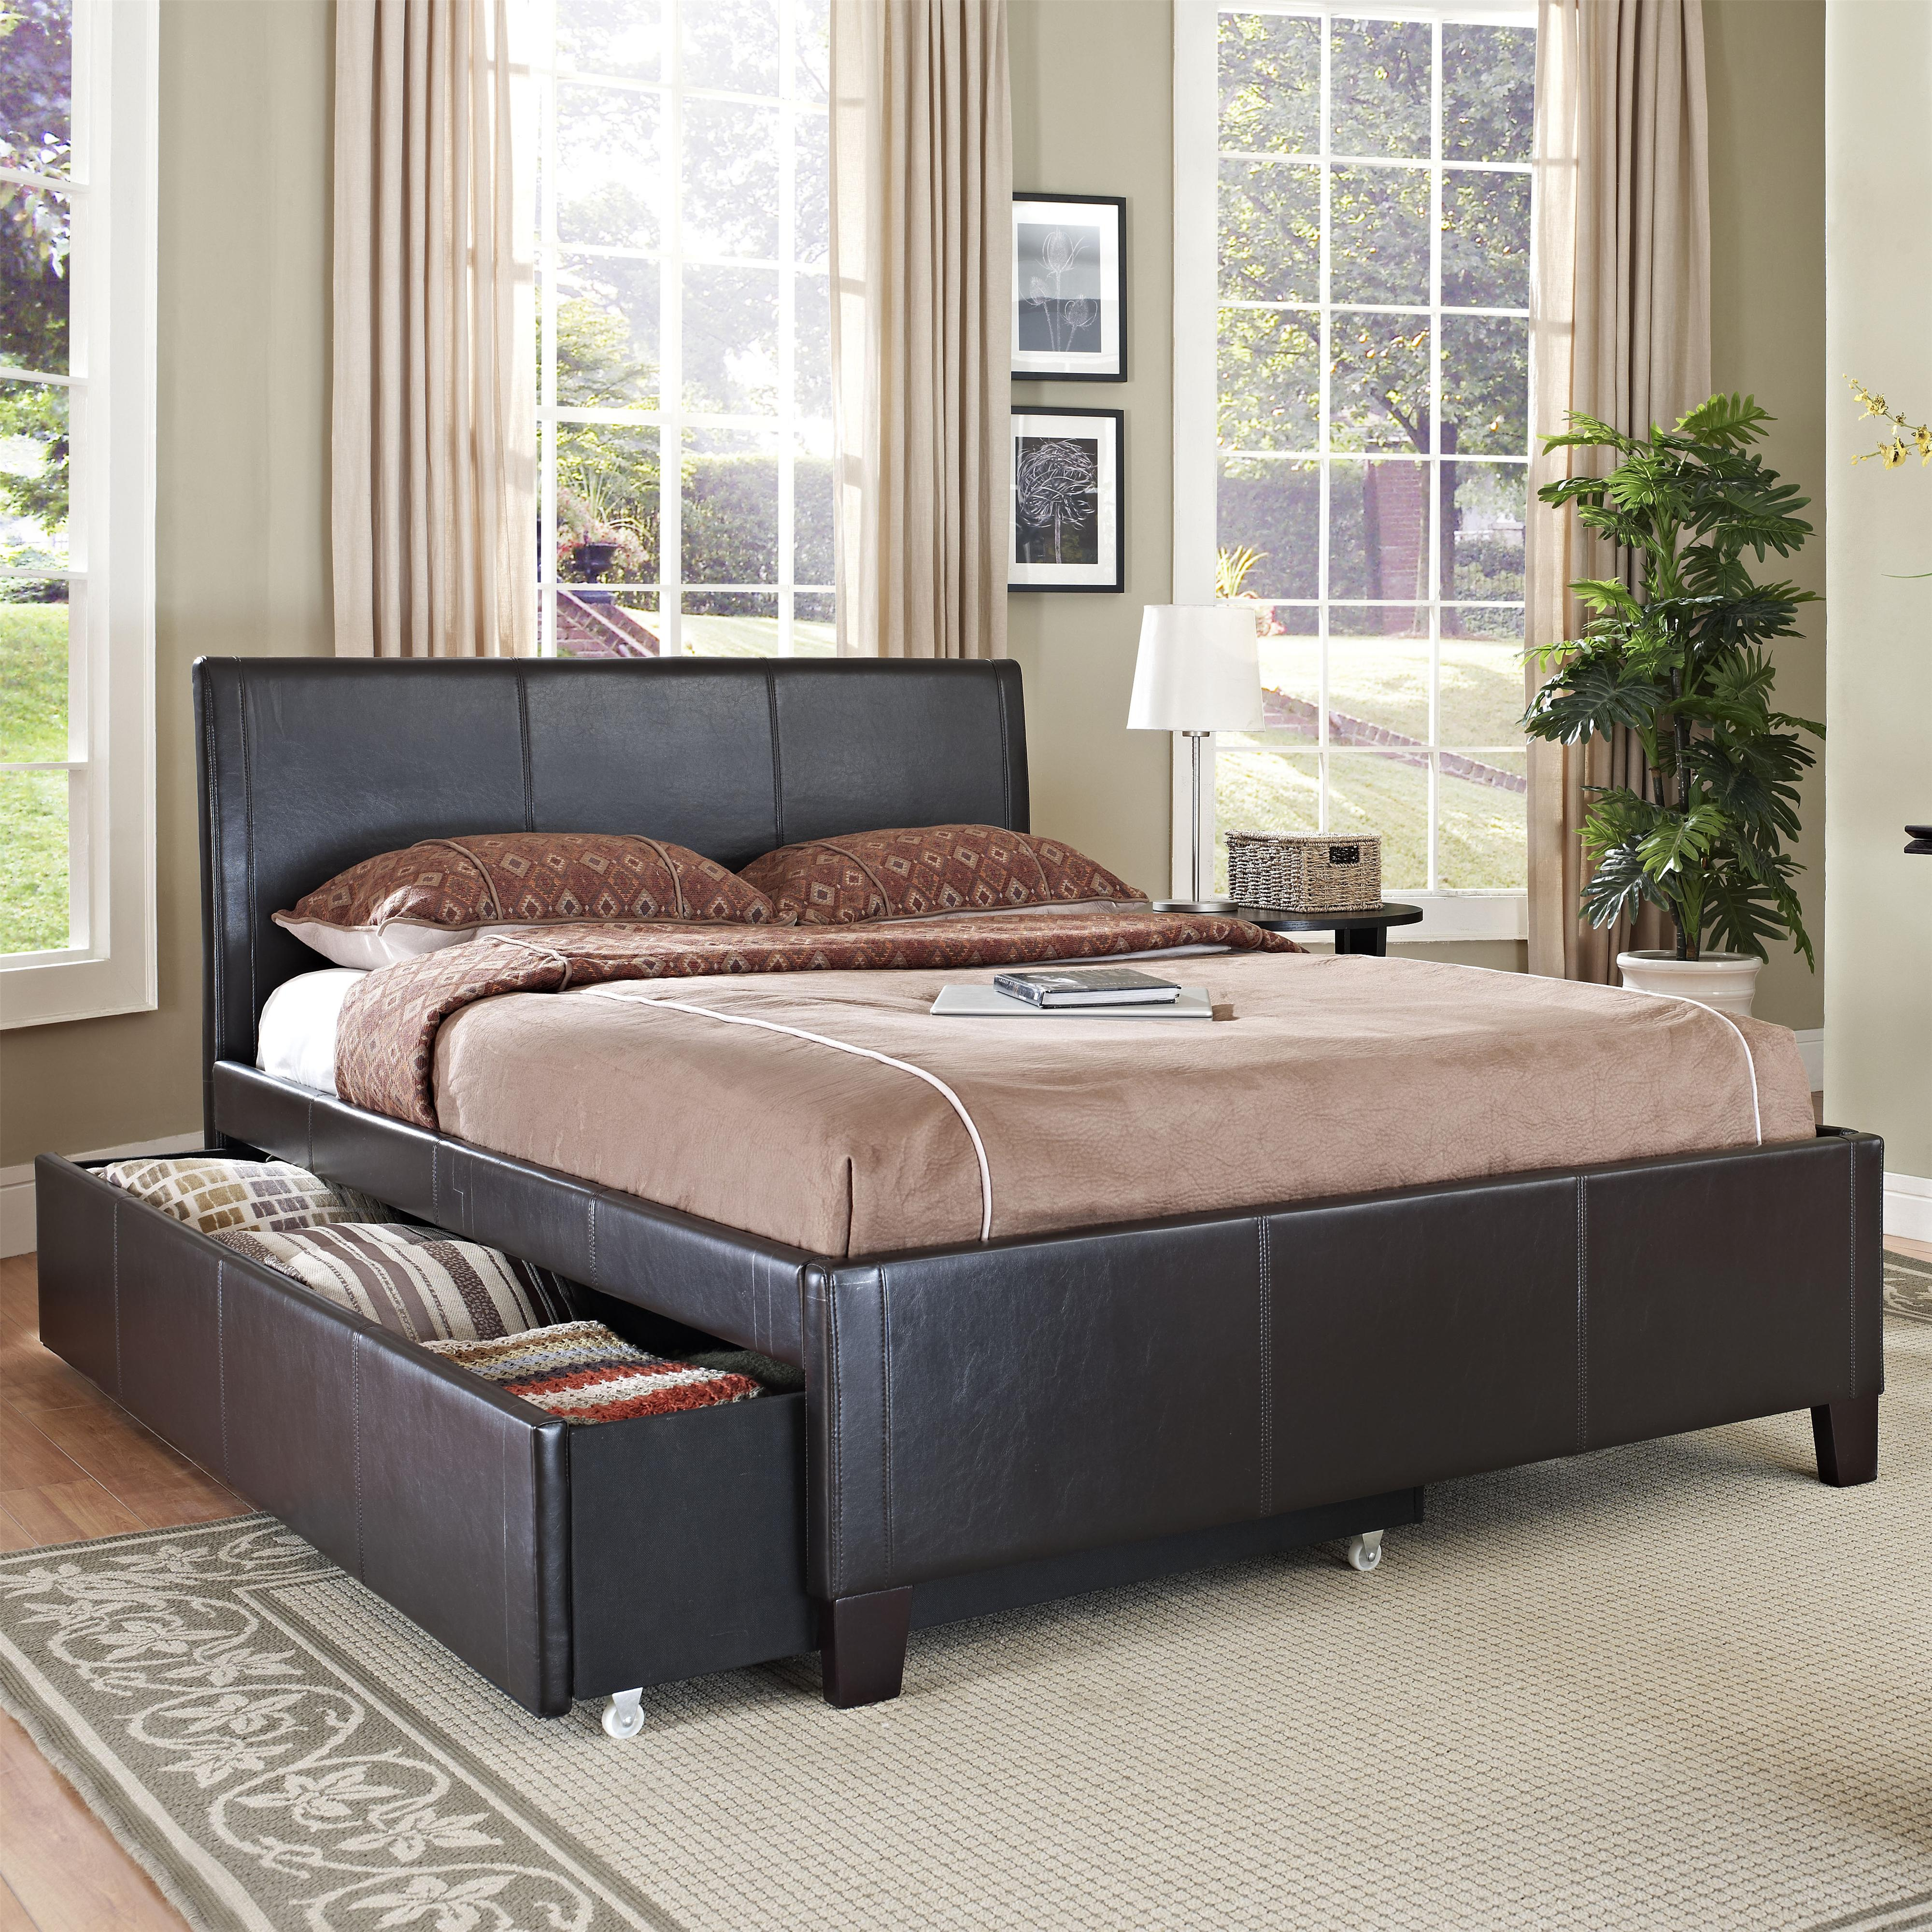 Full Brown Trundle Bed By Standard Furniture Wolf Furniture